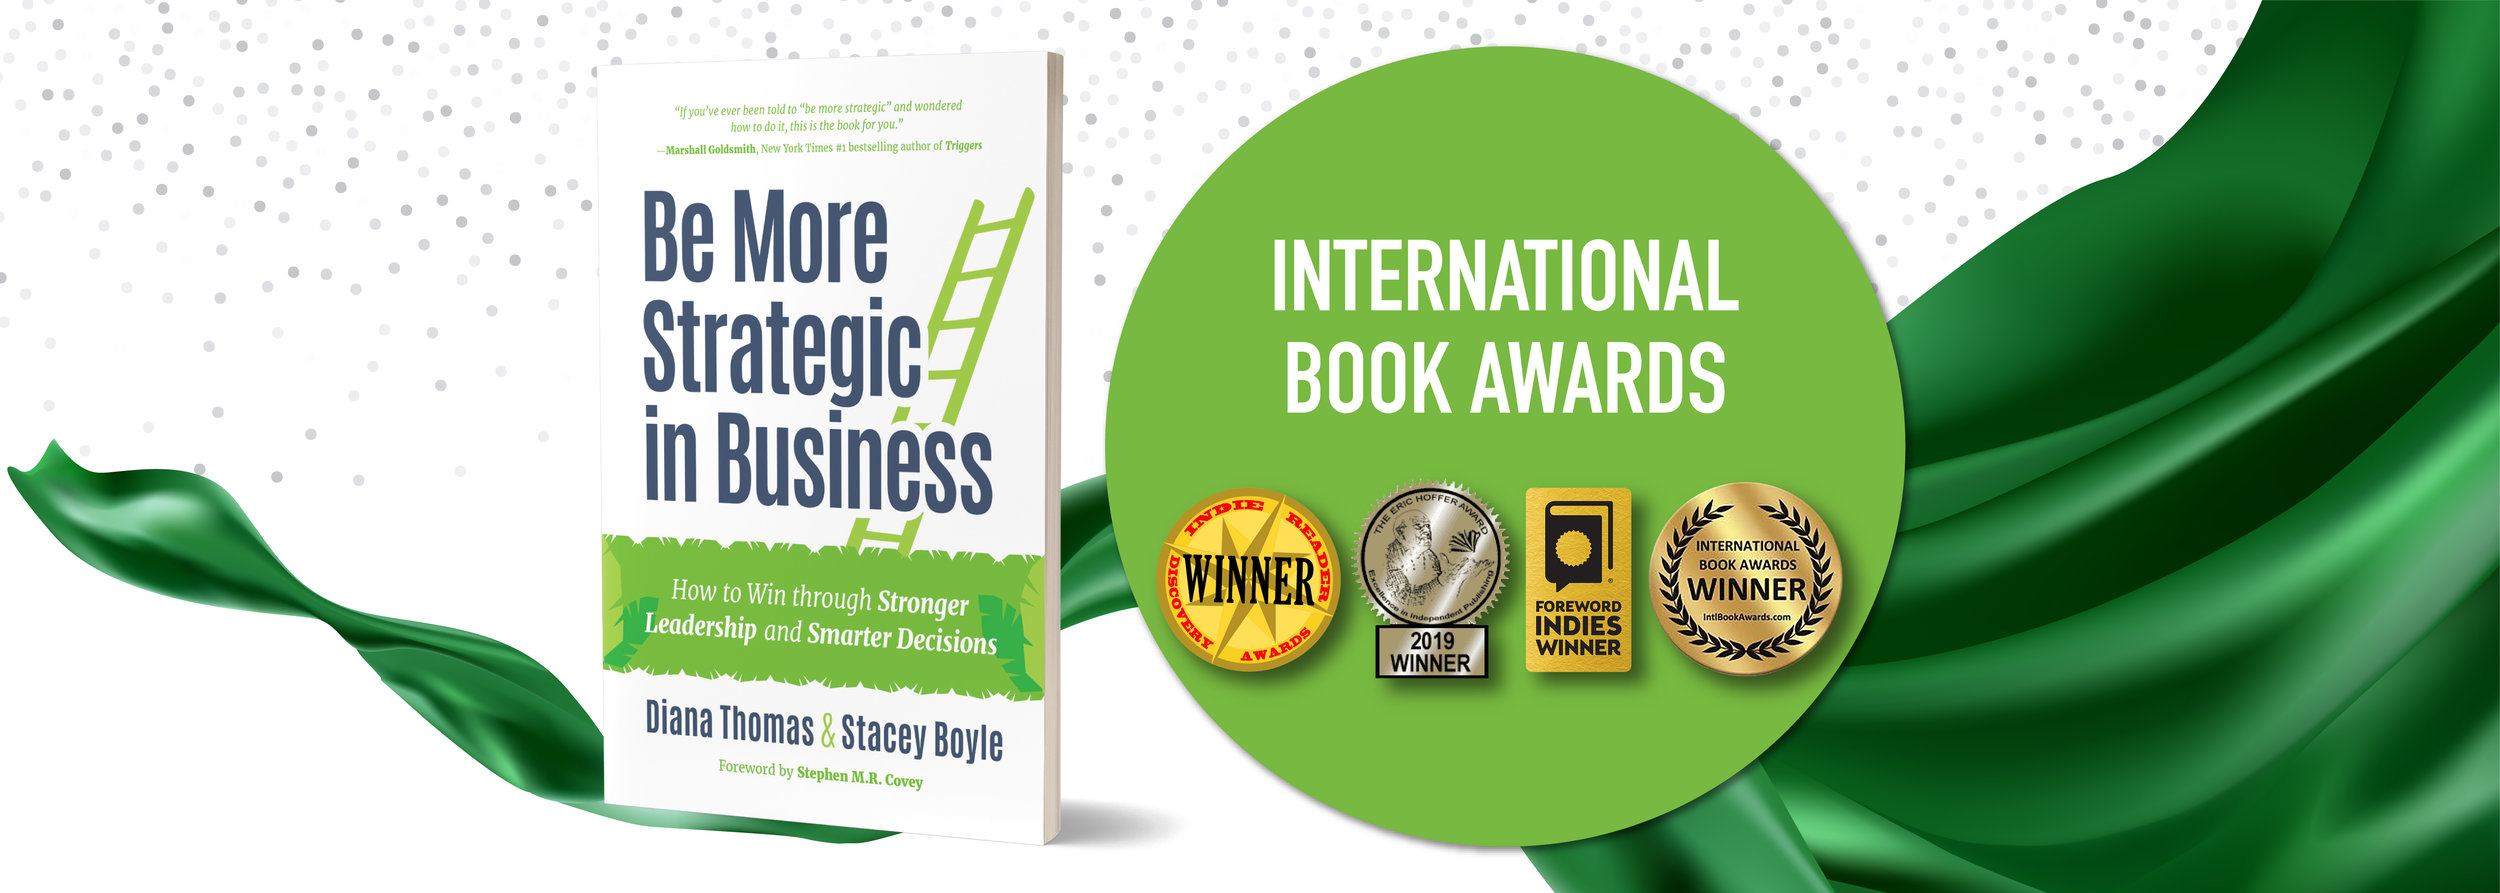 Be More Strategic in Business International Book Awards